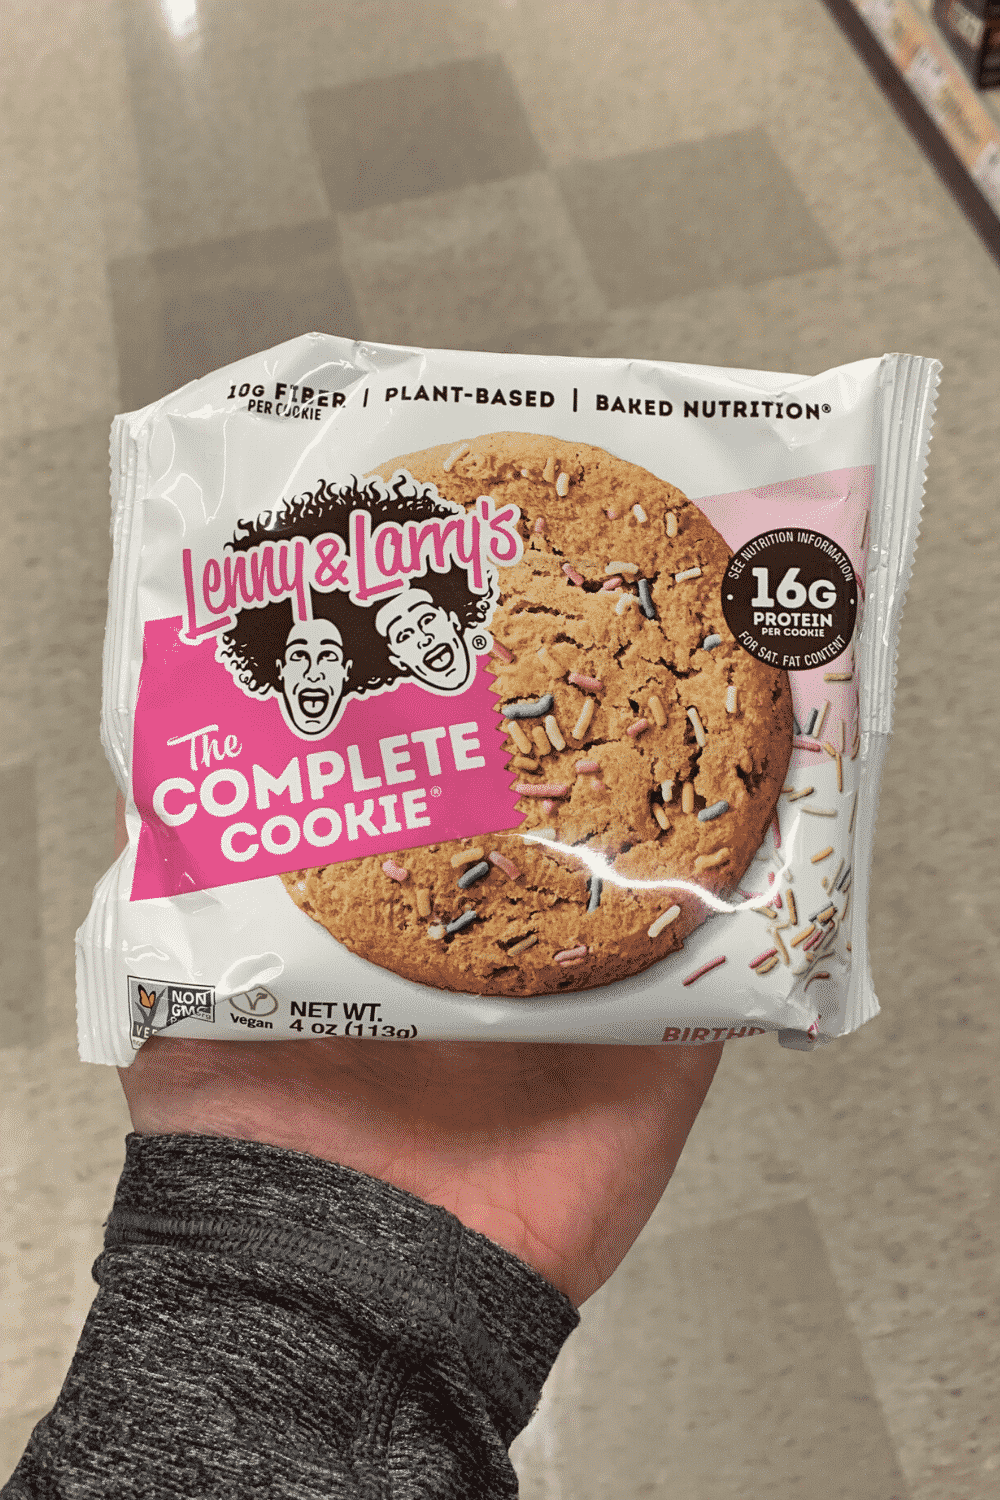 A hand holding a wrapped Lenny and Larry's Complete Cookie birthday cake flavor.